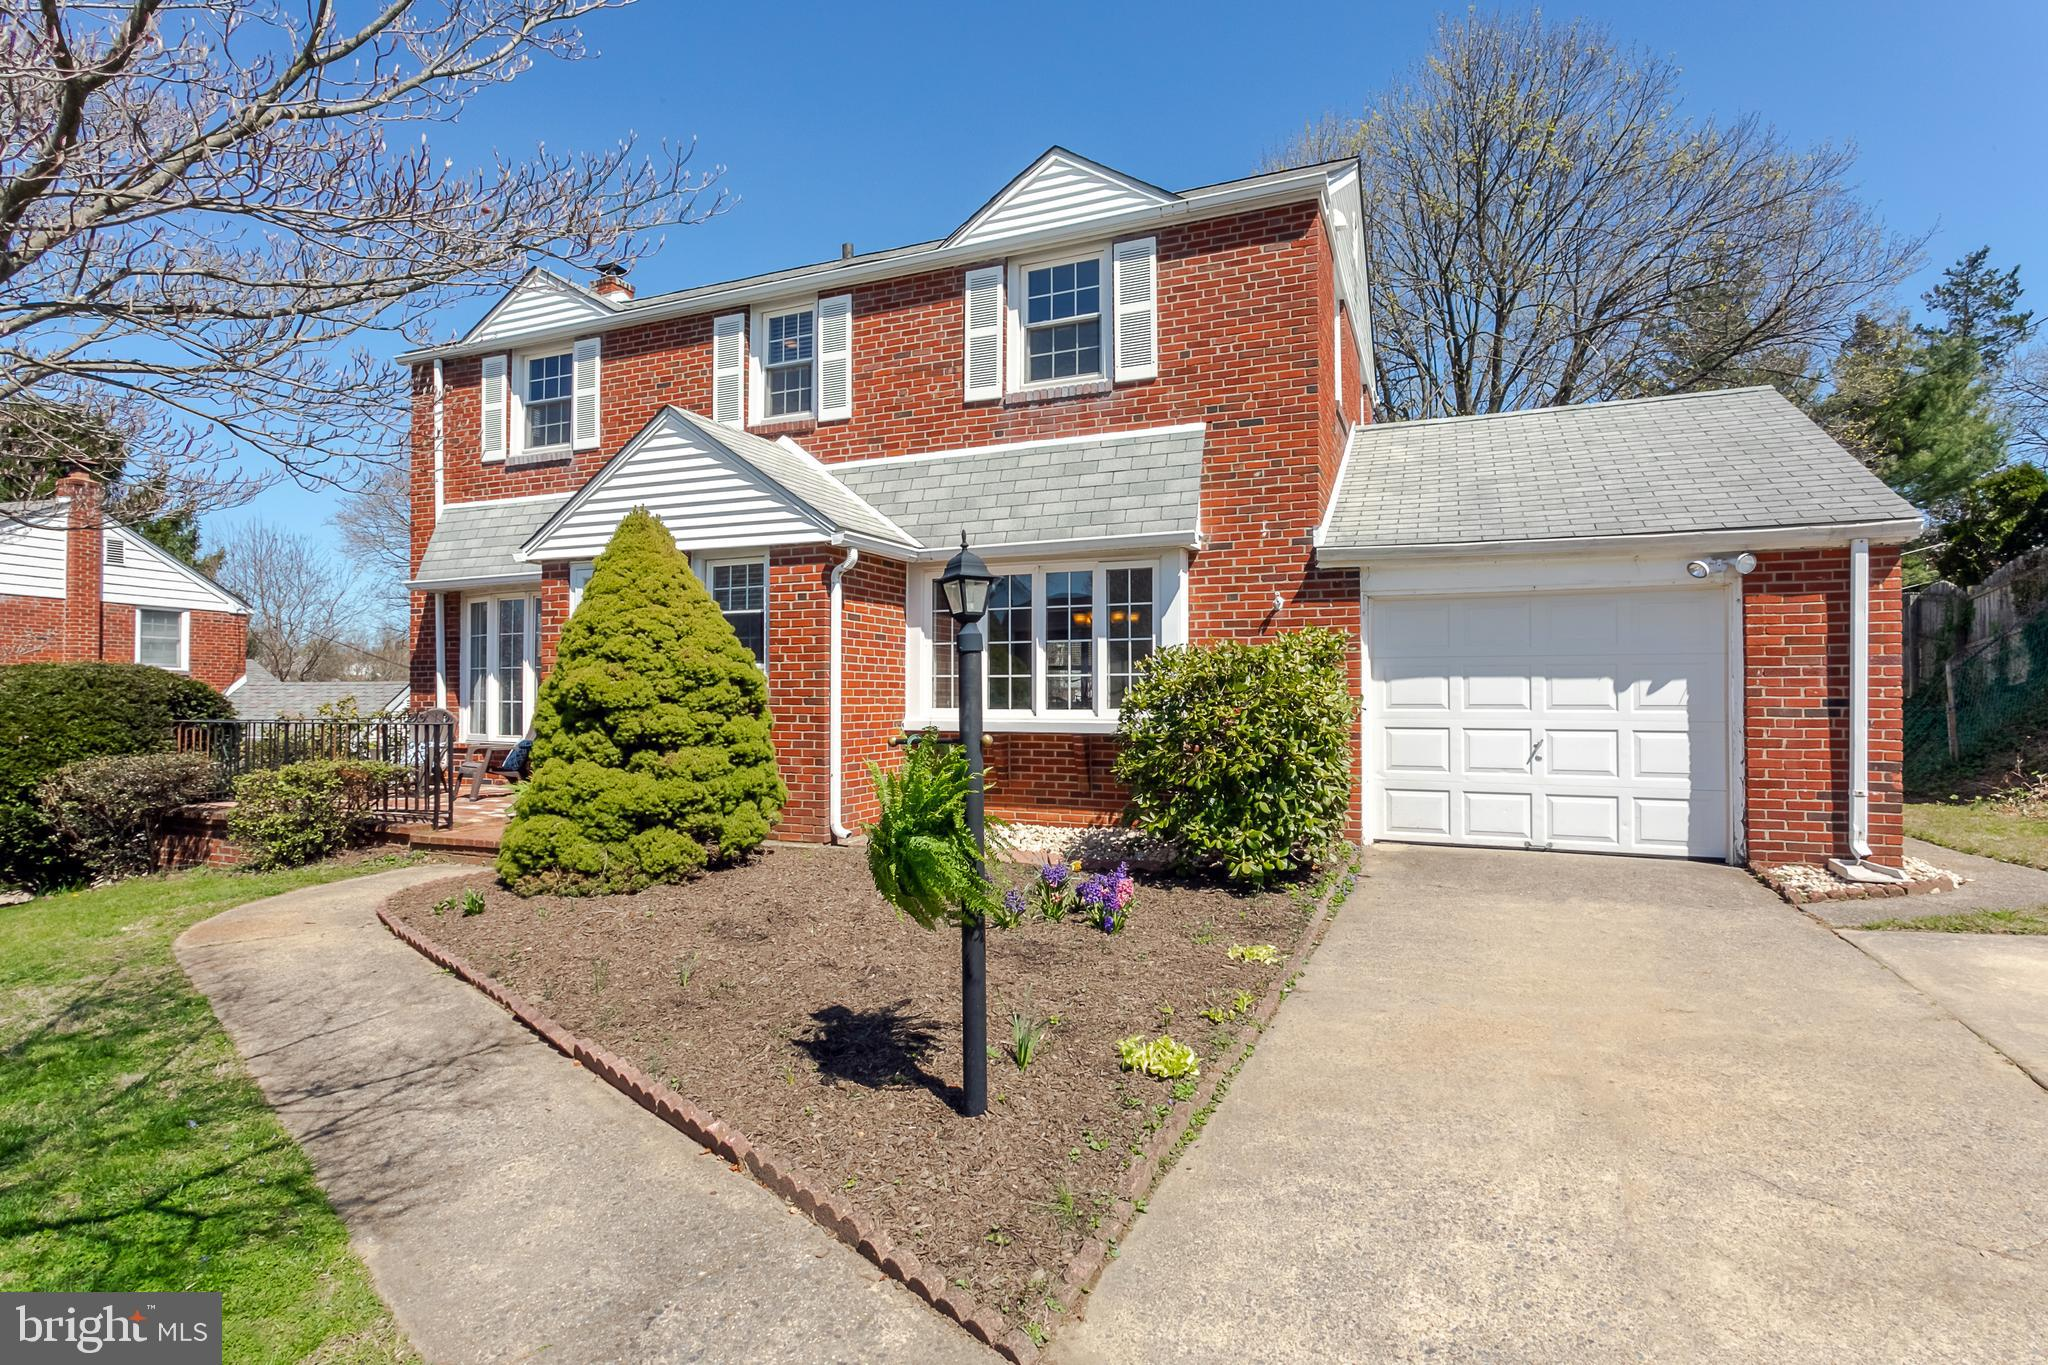 503 MAPLE HILL ROAD, HAVERTOWN, PA 19083